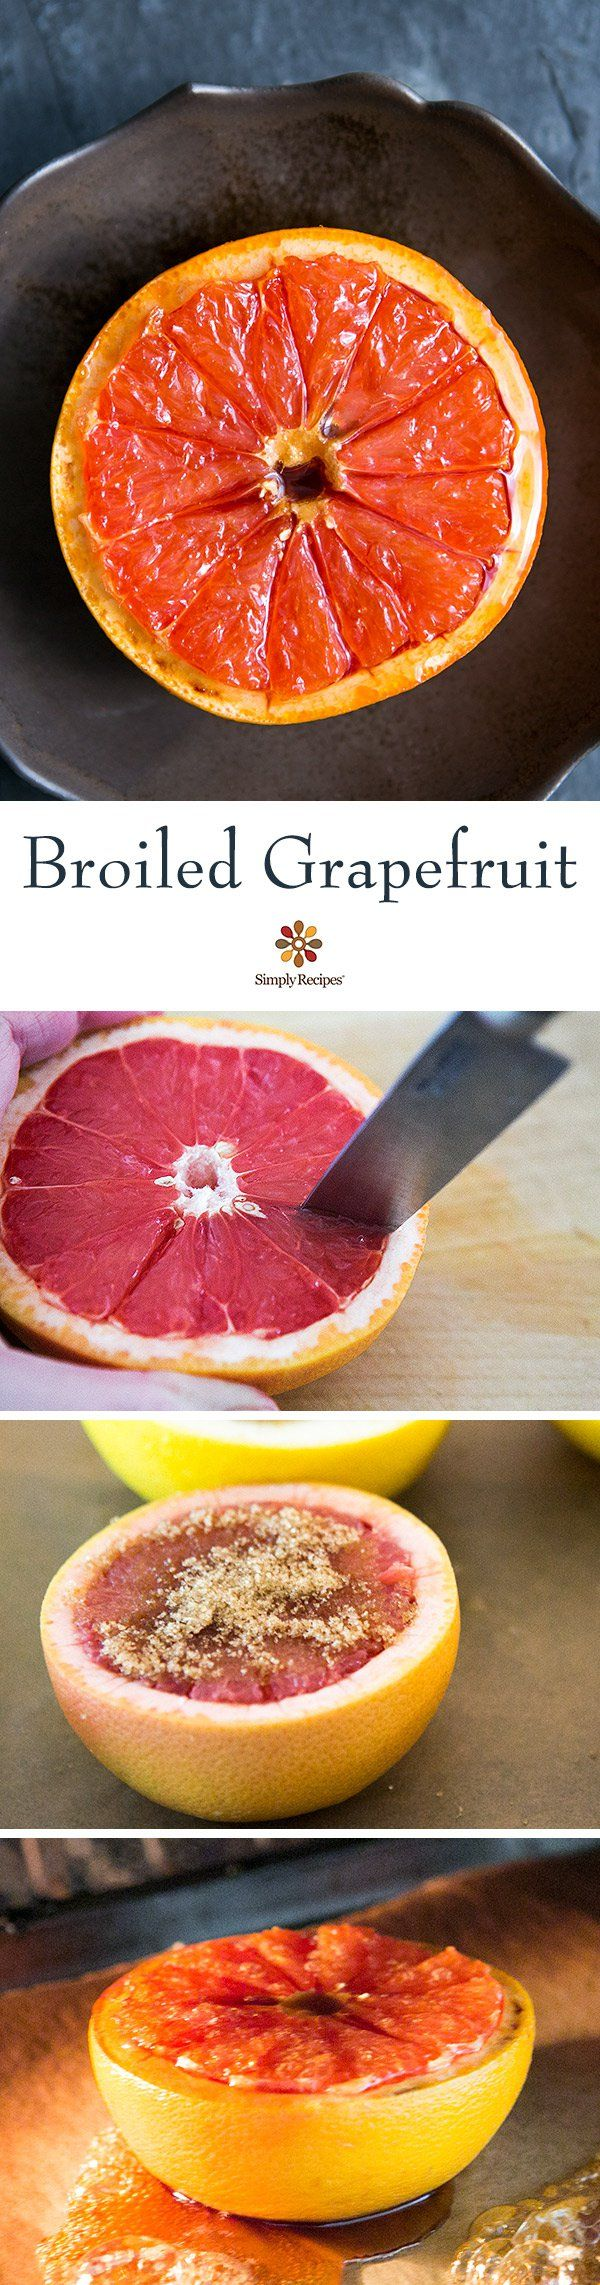 Broiled Grapefruit ~ The Best Way To Eat Grapefruit! Grapefruit Halves,  Sprinkled With Brown